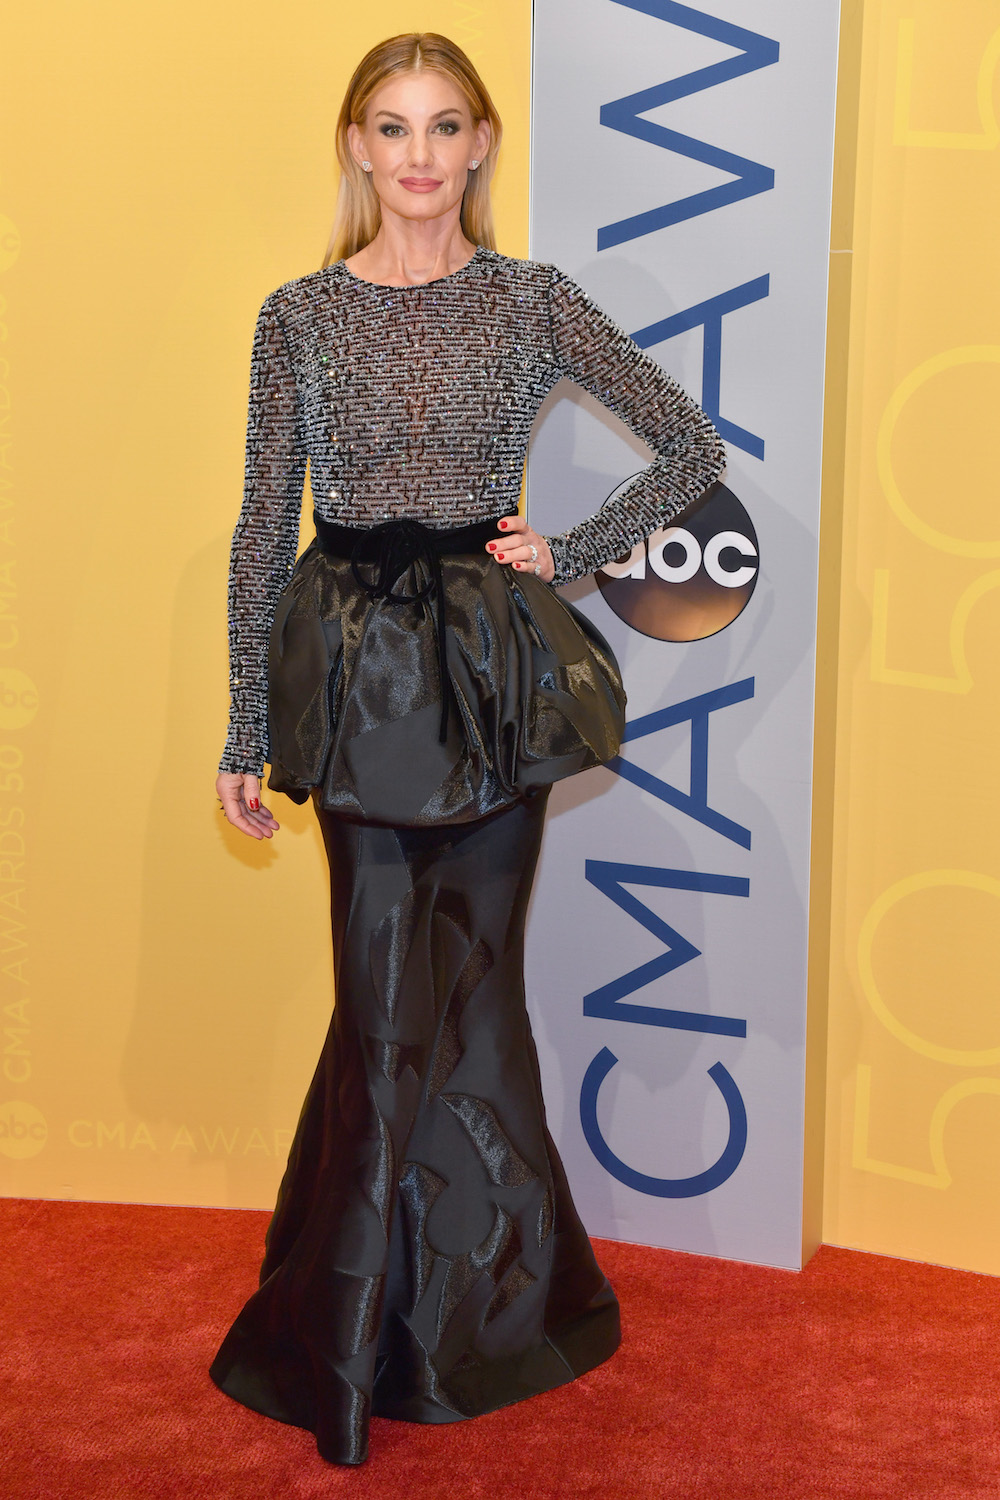 NASHVILLE, TN - NOVEMBER 02:  Singer Faith Hill attends the 50th annual CMA Awards at the Bridgestone Arena on November 2, 2016 in Nashville, Tennessee.  (Photo by Jason Davis/FilmMagic)